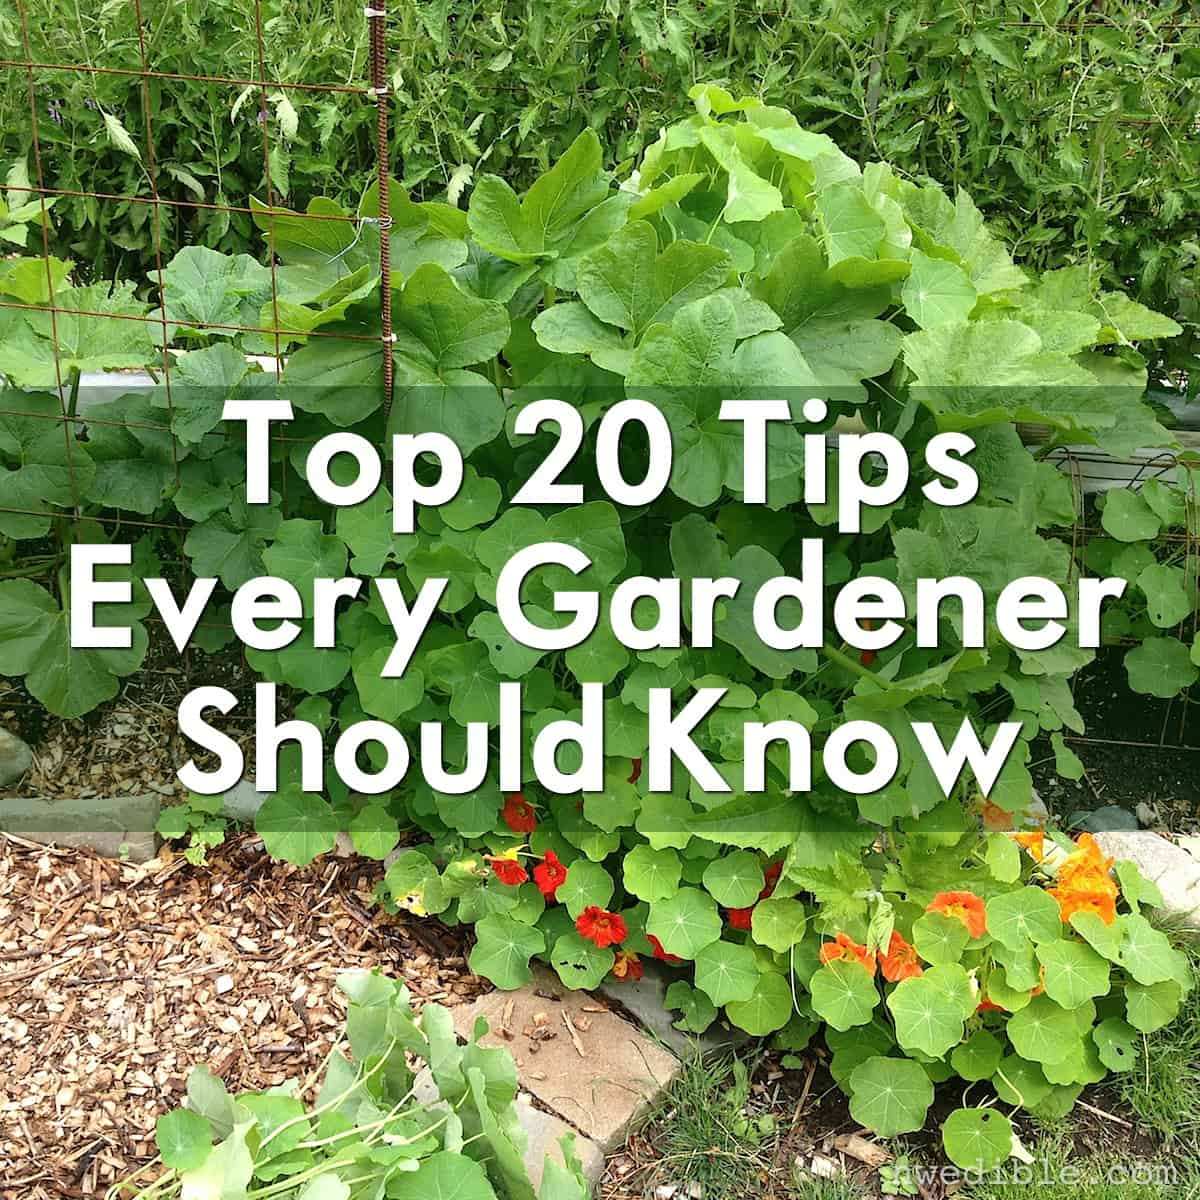 Simple Vegetable Garden Ideas For Your Living: Top 20 Tips Every Gardener Should Know